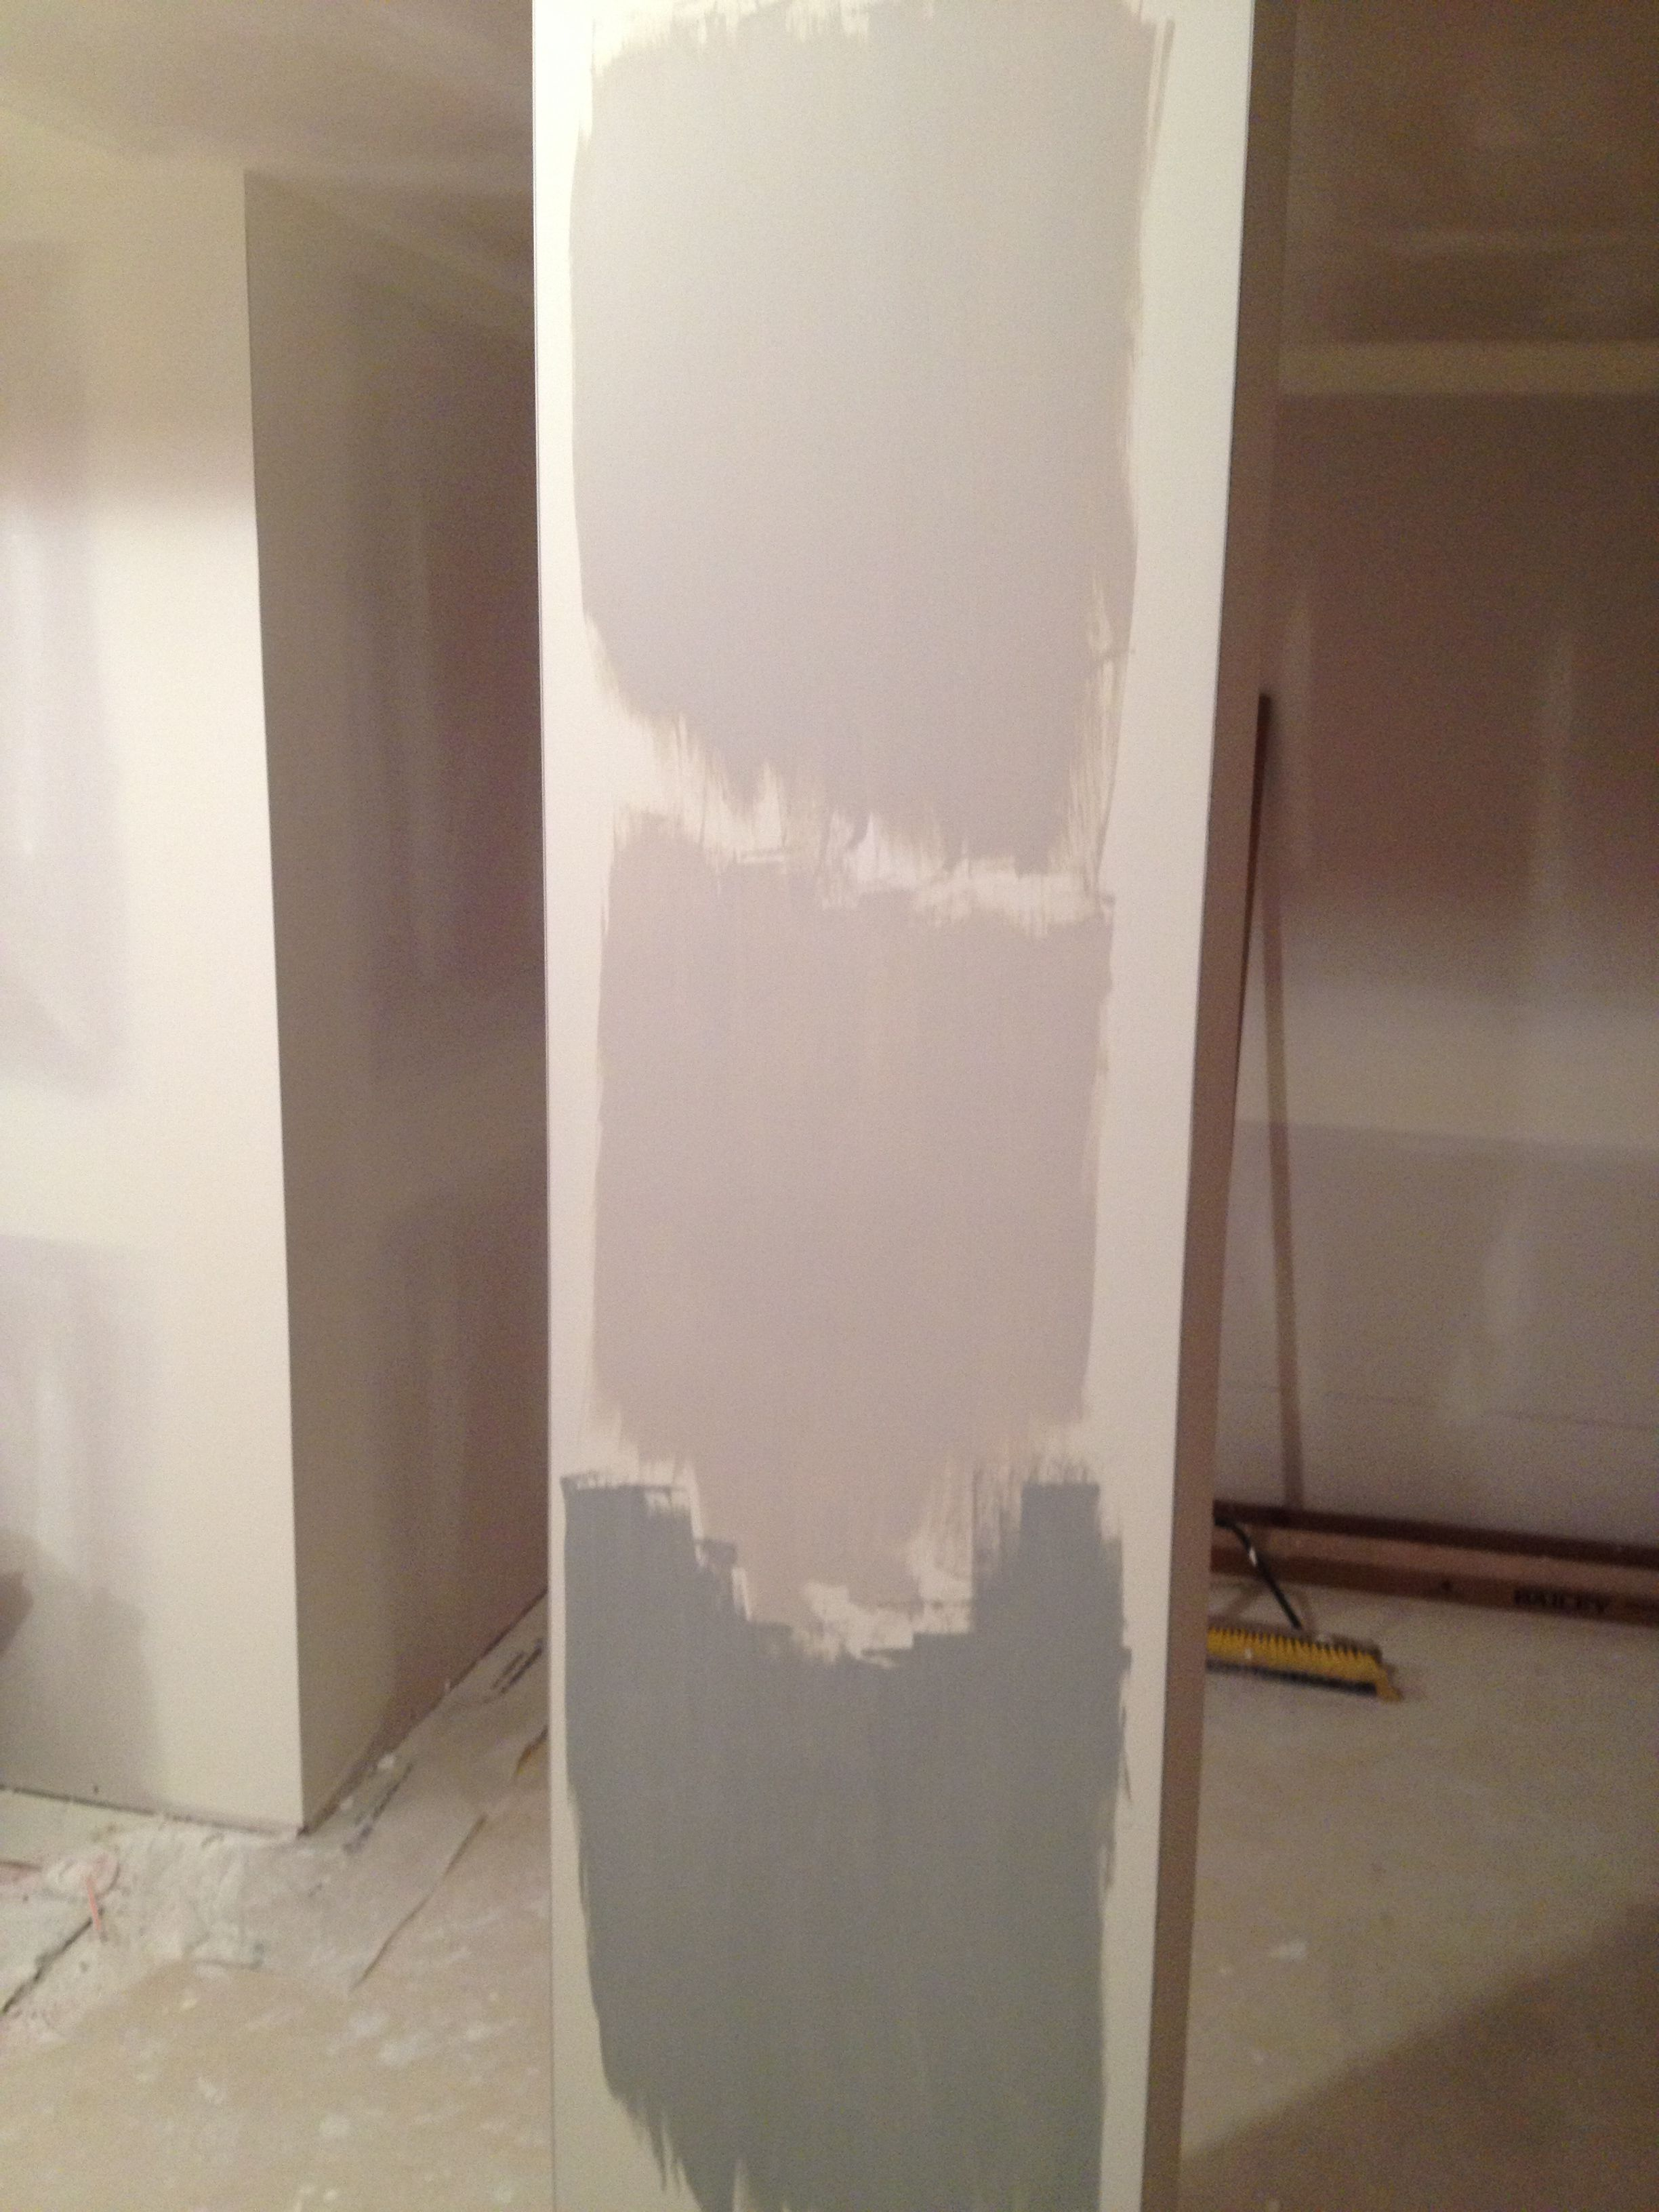 Benjamin Moore Abalone Top Balboa Mist Middle Coventry Gray Bottom Room Paint Colors Paint Colors For Living Room Interior Paint Colors For Living Room